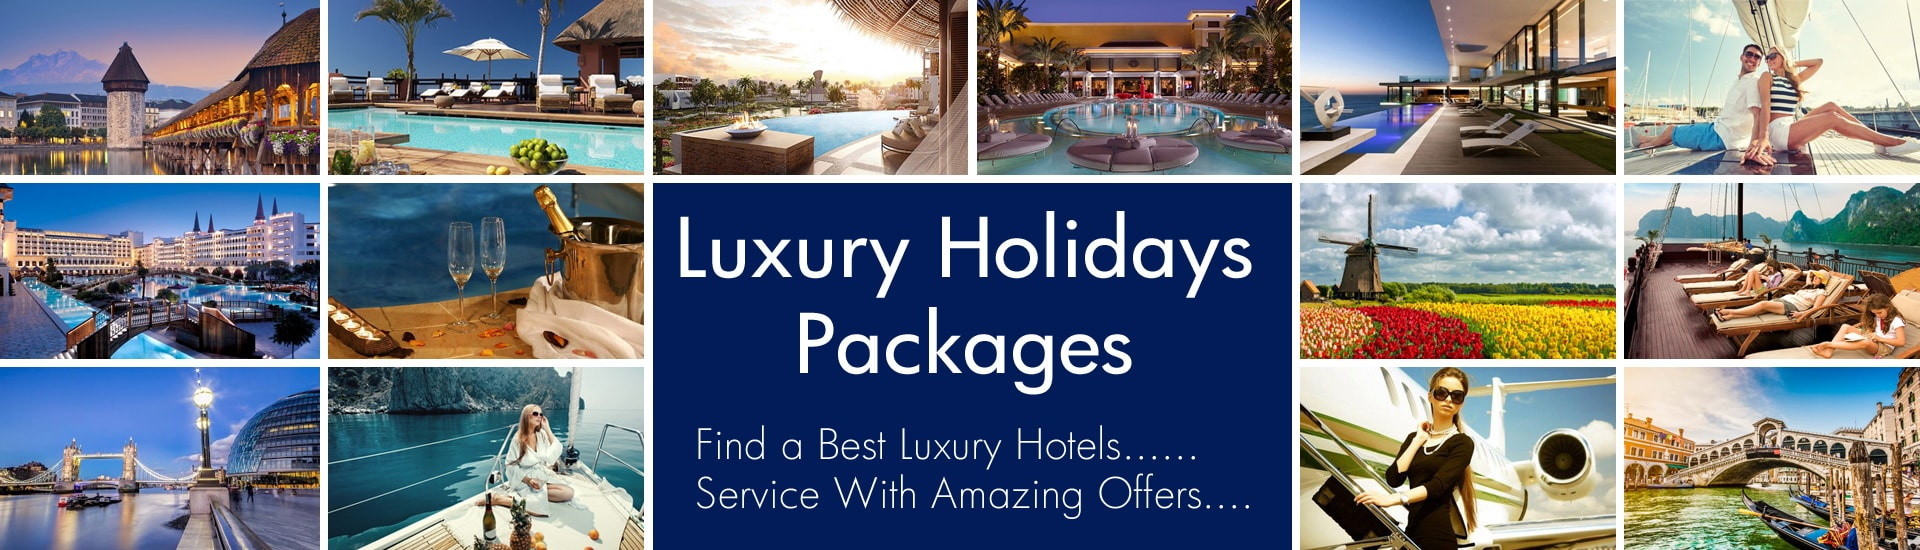 Luxury European Vacation Packages Vacation - Europe vacation packages